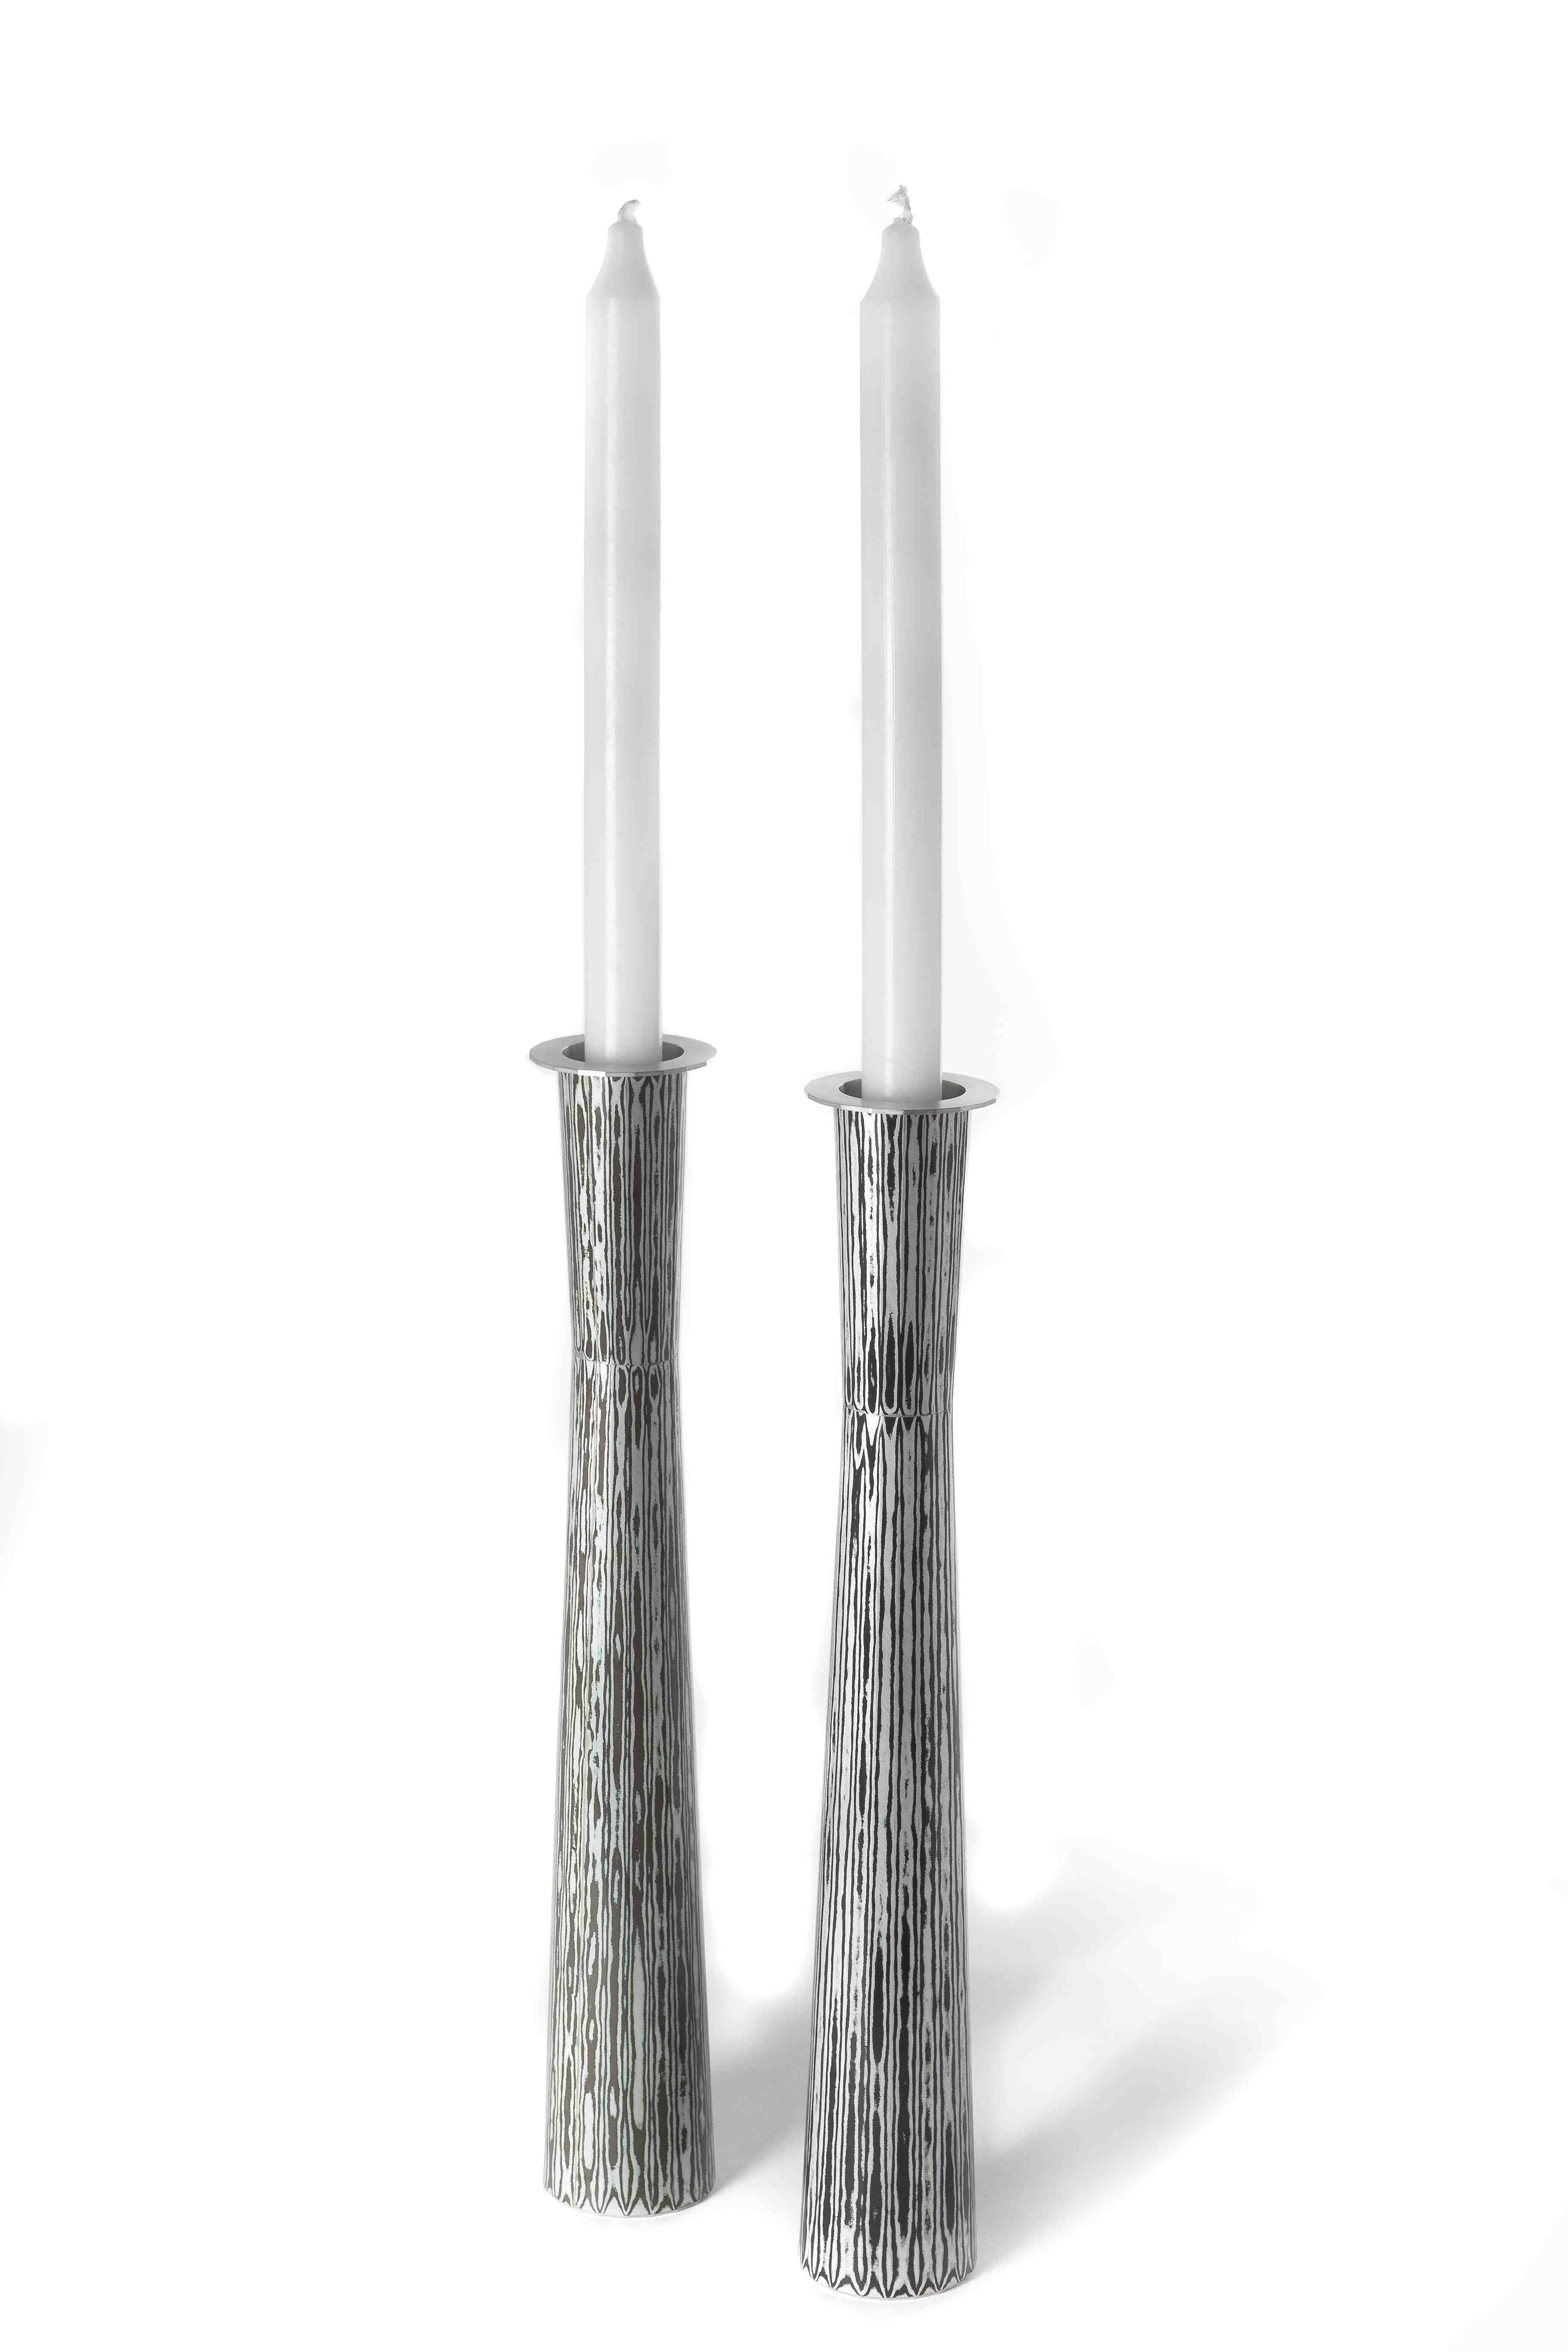 Fabricated Mokume Gane Vase : Candle holder made from a combination of silver cooper and gilding metal. Ht 34cm Dia 5.2cm